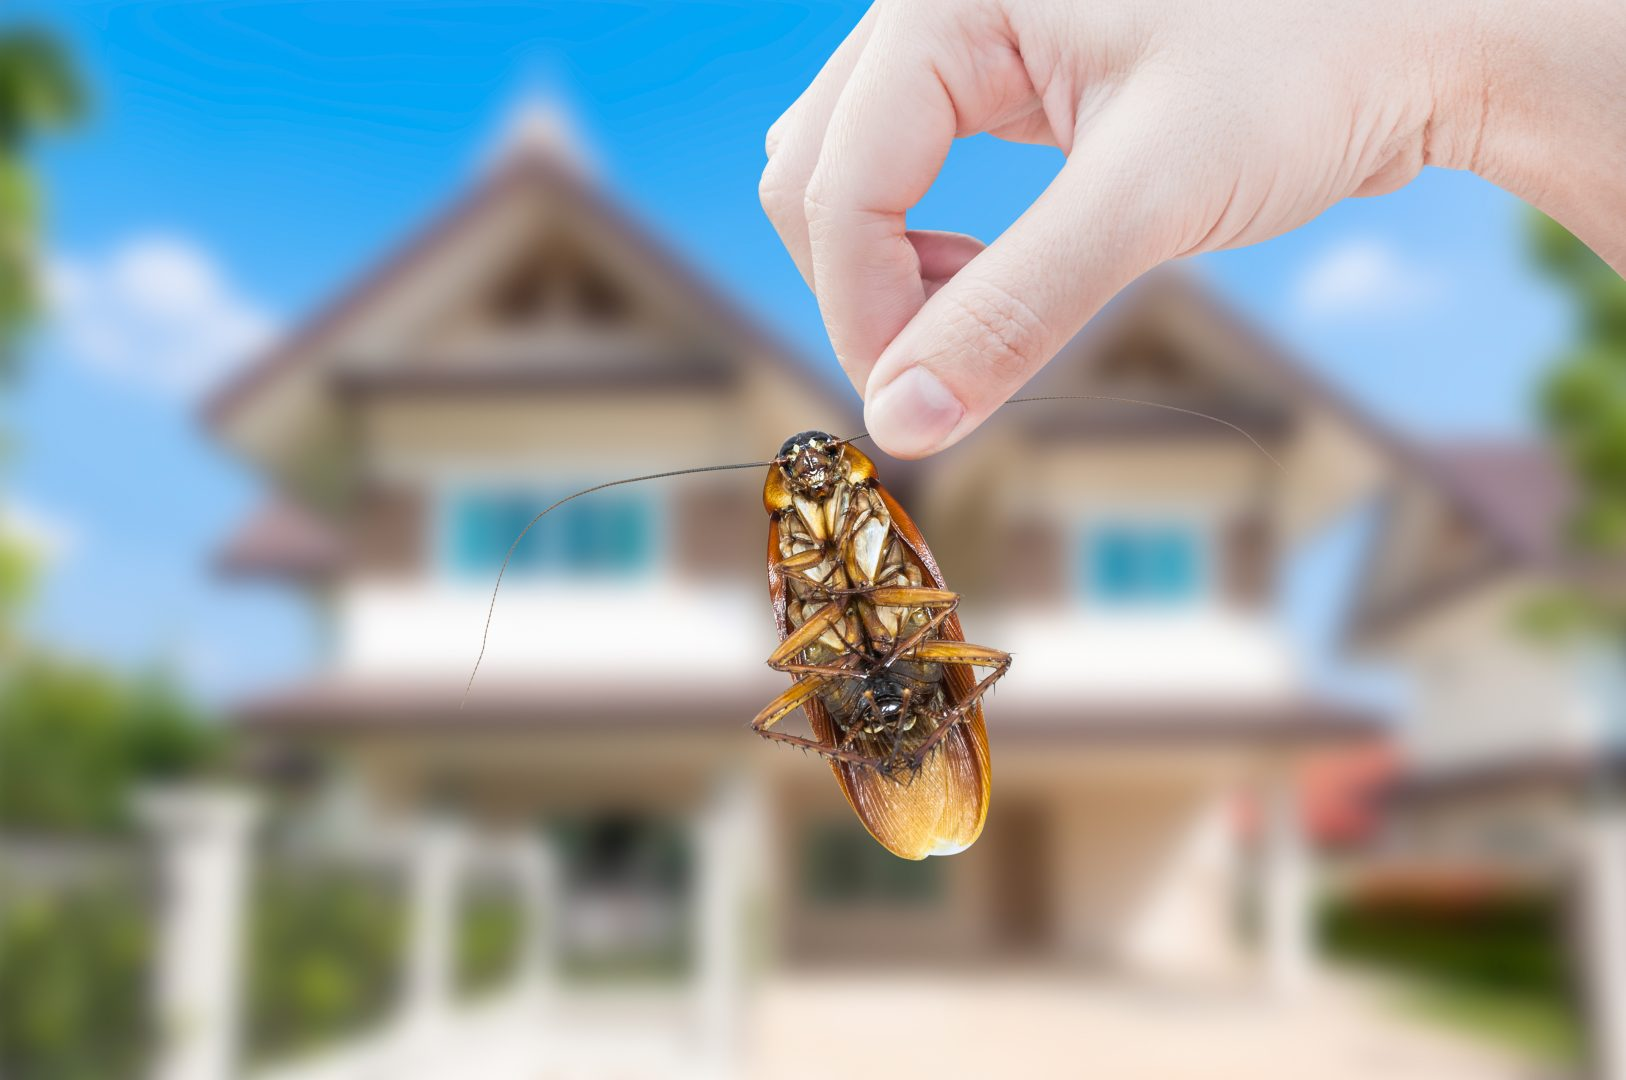 DIY Home Pest Control